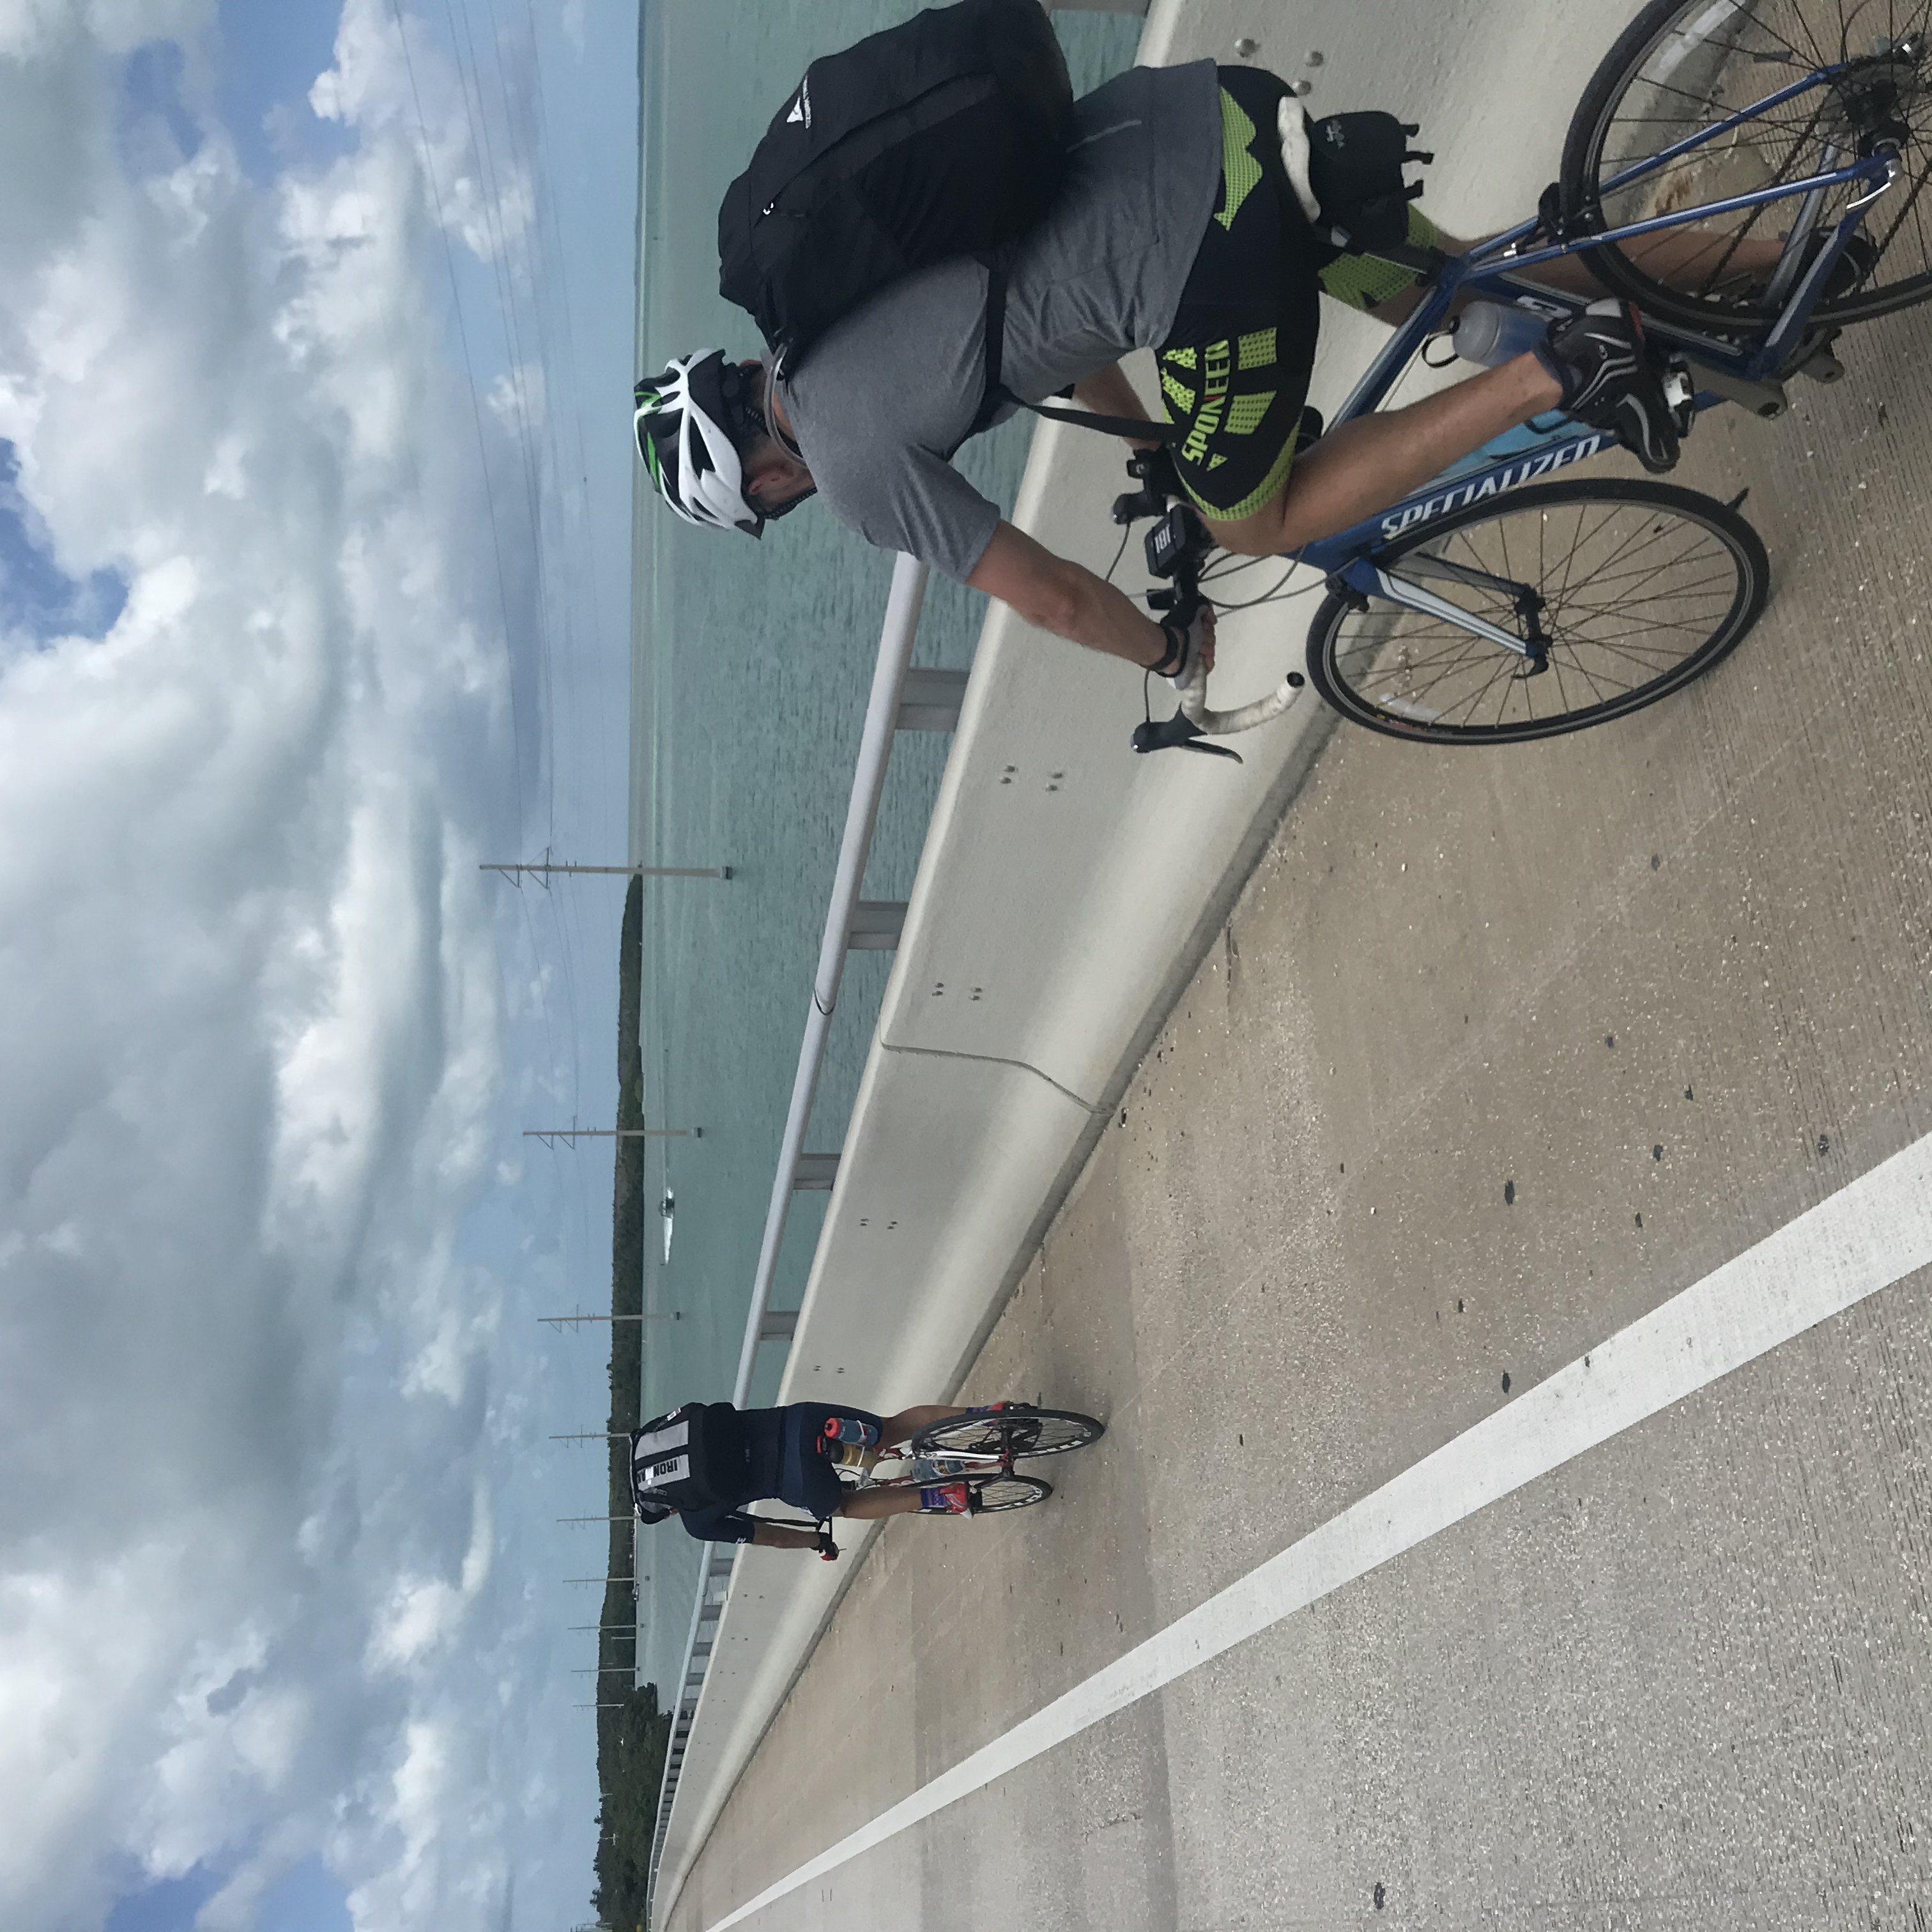 Carrier employees cycle for COVID relief